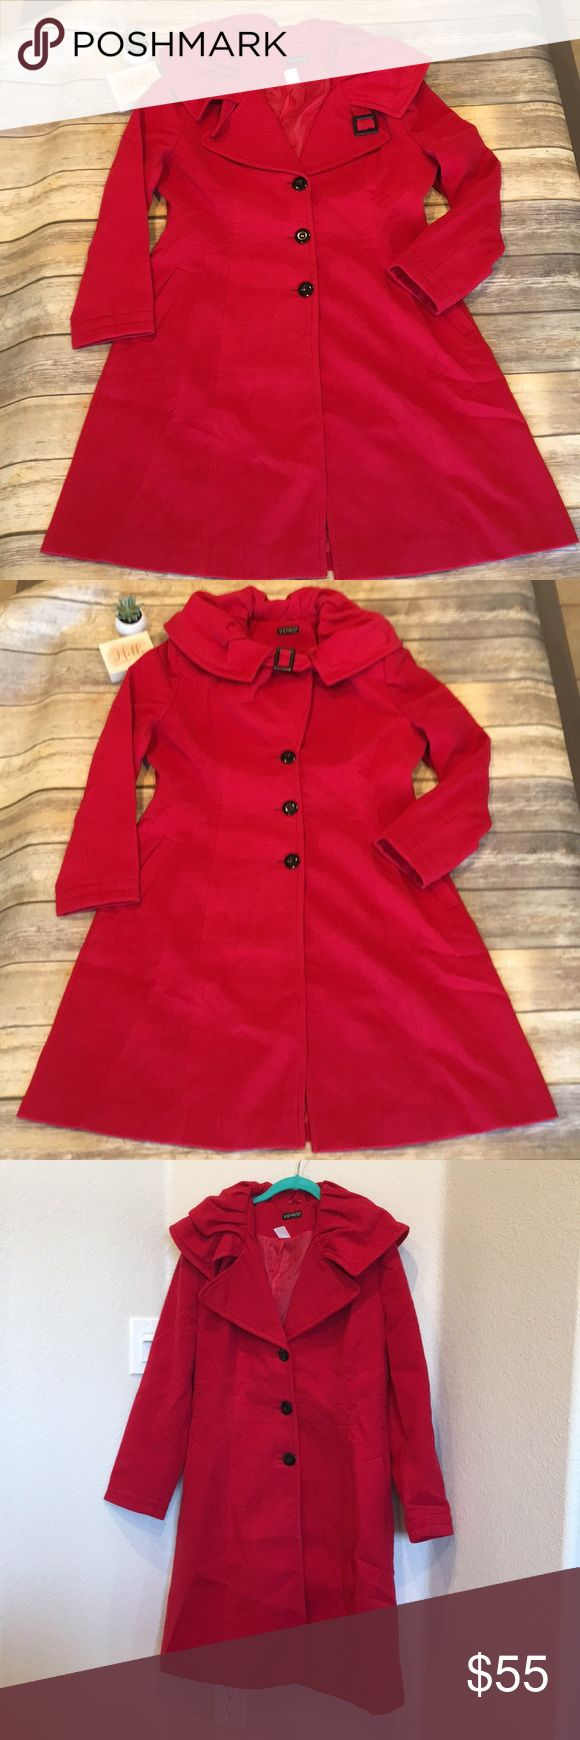 🦋Venus Red Trench Coat NWT (ordered online, so no tags, but will ship in bag it arrived it).  This is so gorgeous!   Even has a slide button to protect your neck from frosty weather.  Pockets are not functional.  Please see photos for approximate measurements of item lying flat.    🖤Thanks for stopping by! 🦋M60 VENUS Jackets & Coats Trench Coats